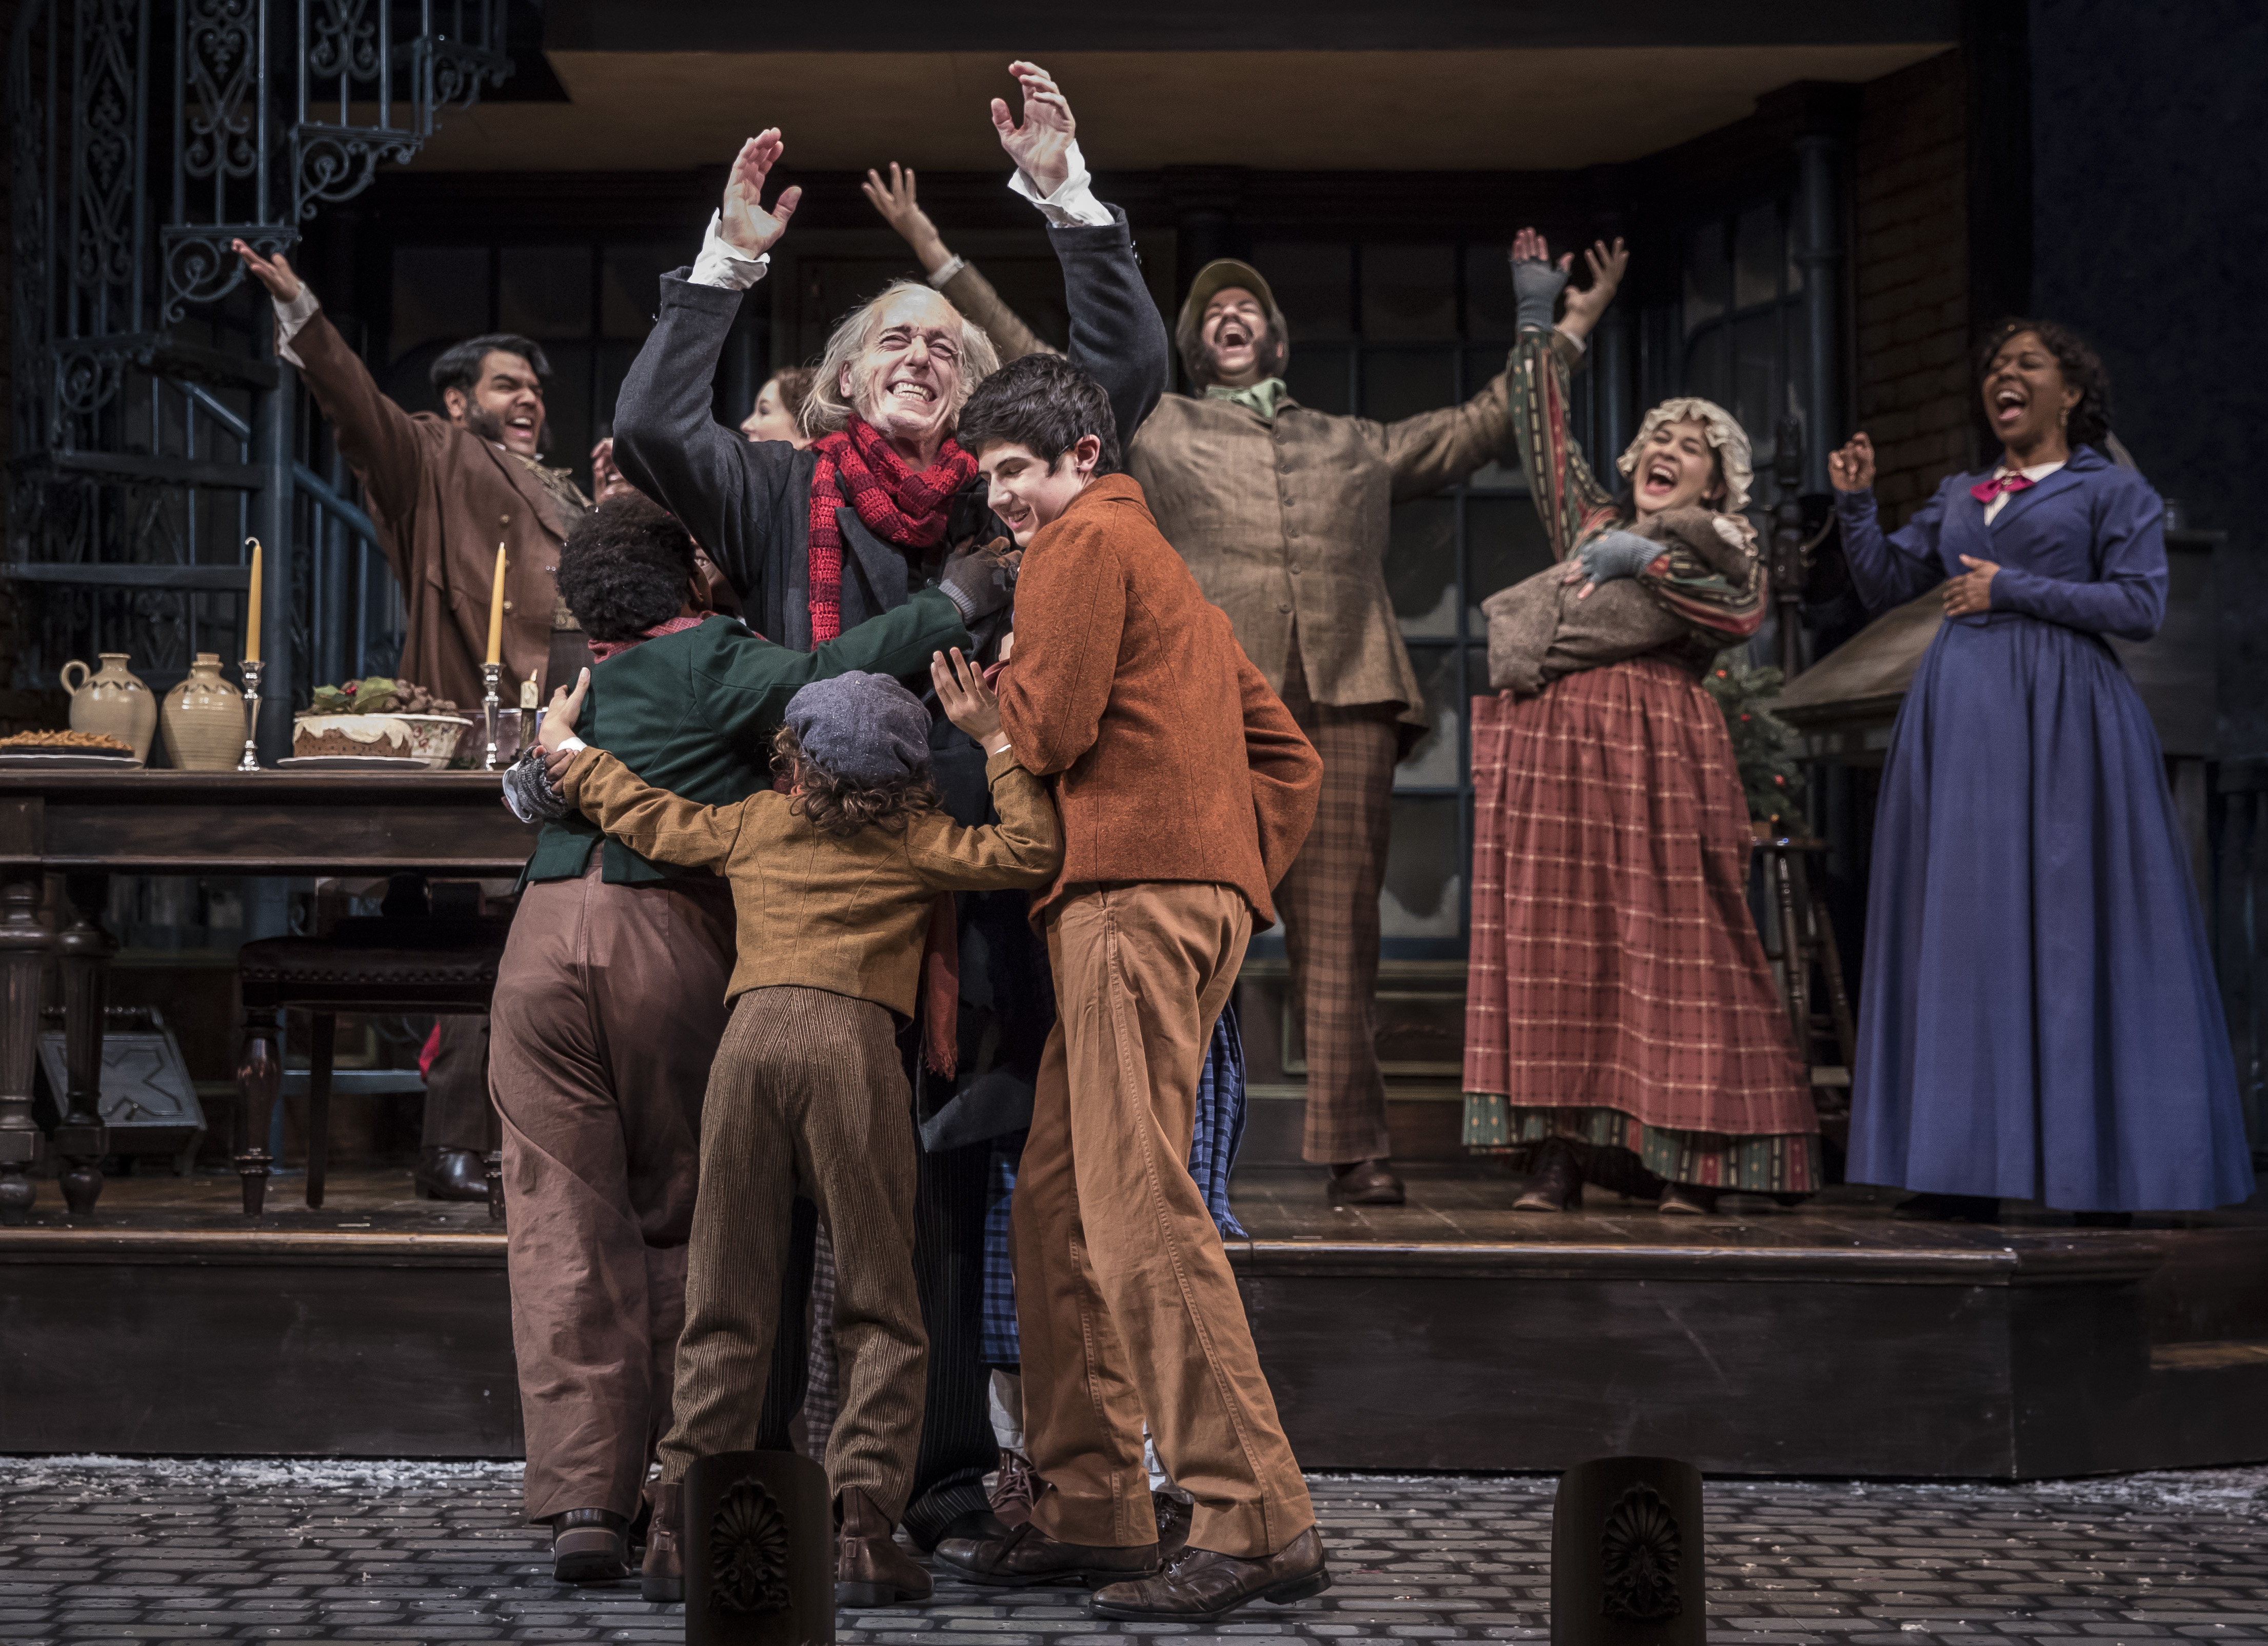 TWO HOLIDAY SHOWS TAKE THE STAGE AT GOODMAN THEATRE THIS SEASON |